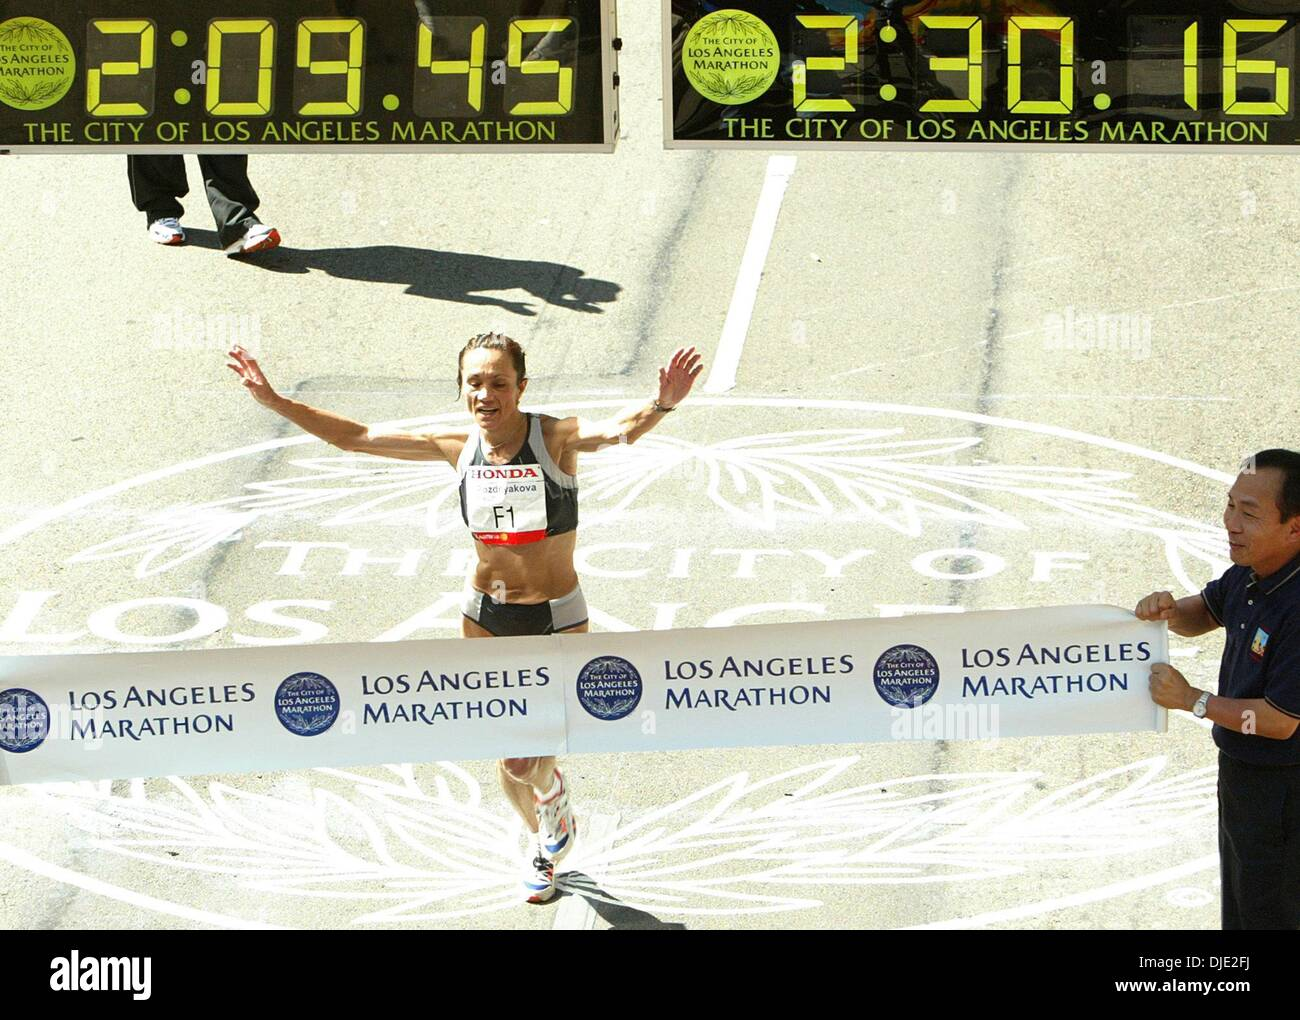 Mar 07, 2004; Los Angeles, CA, USA; TATYANA POZDNYAKOVA from Ukraine races to the finish line first in the women's divison of the Los Angeles Marathon XIX in Los Angeles, CA. - Stock Image